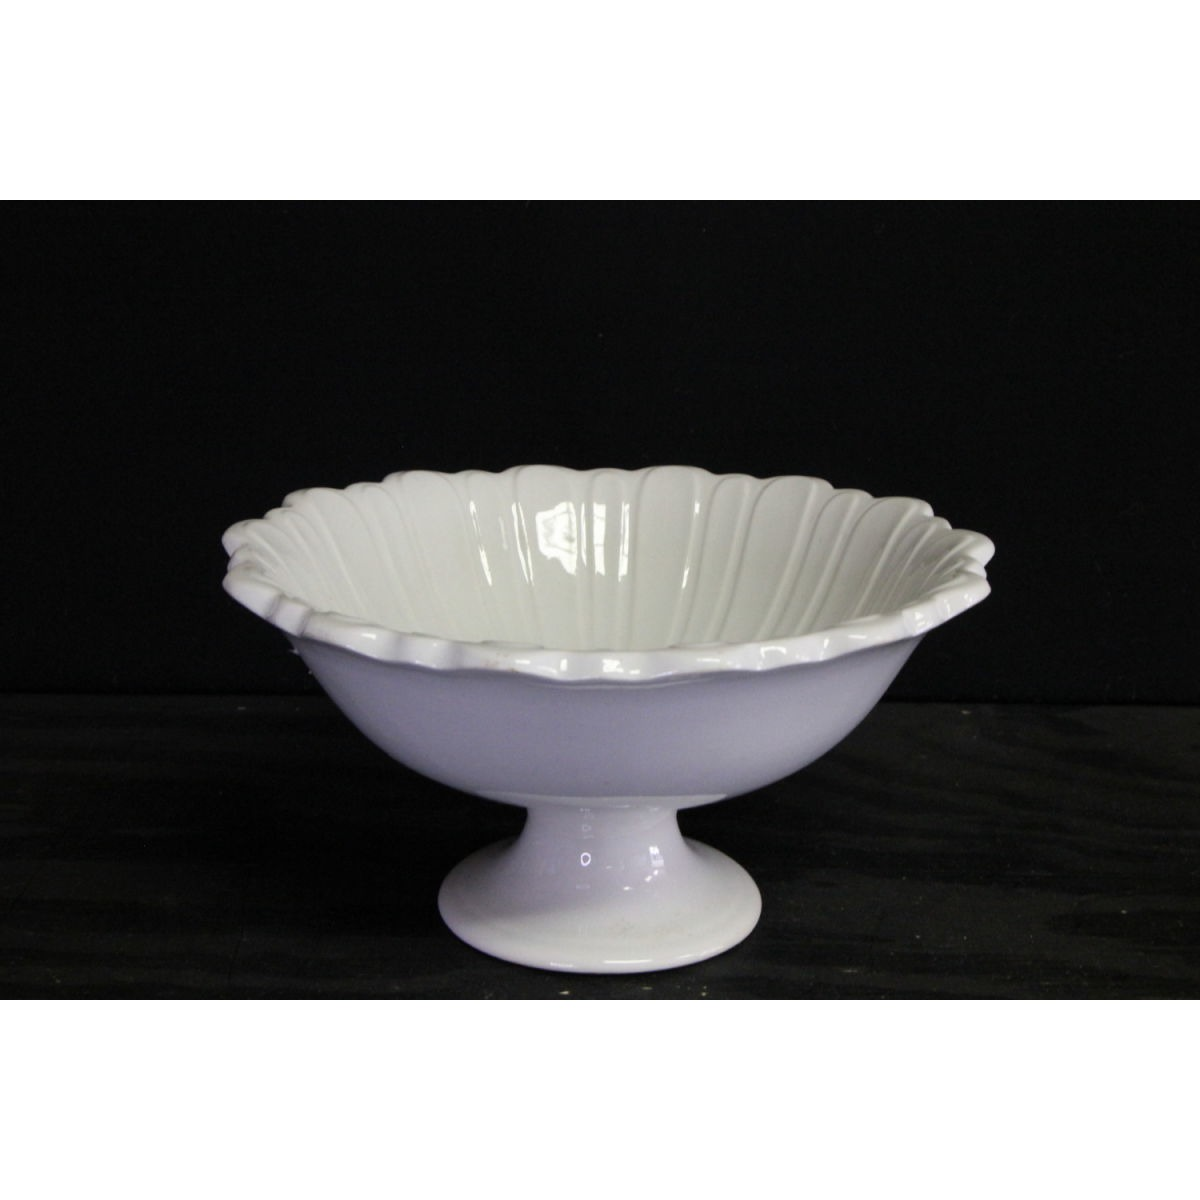 Incredible Ironstone Fluted Scalloped Edge Fruit Bowl